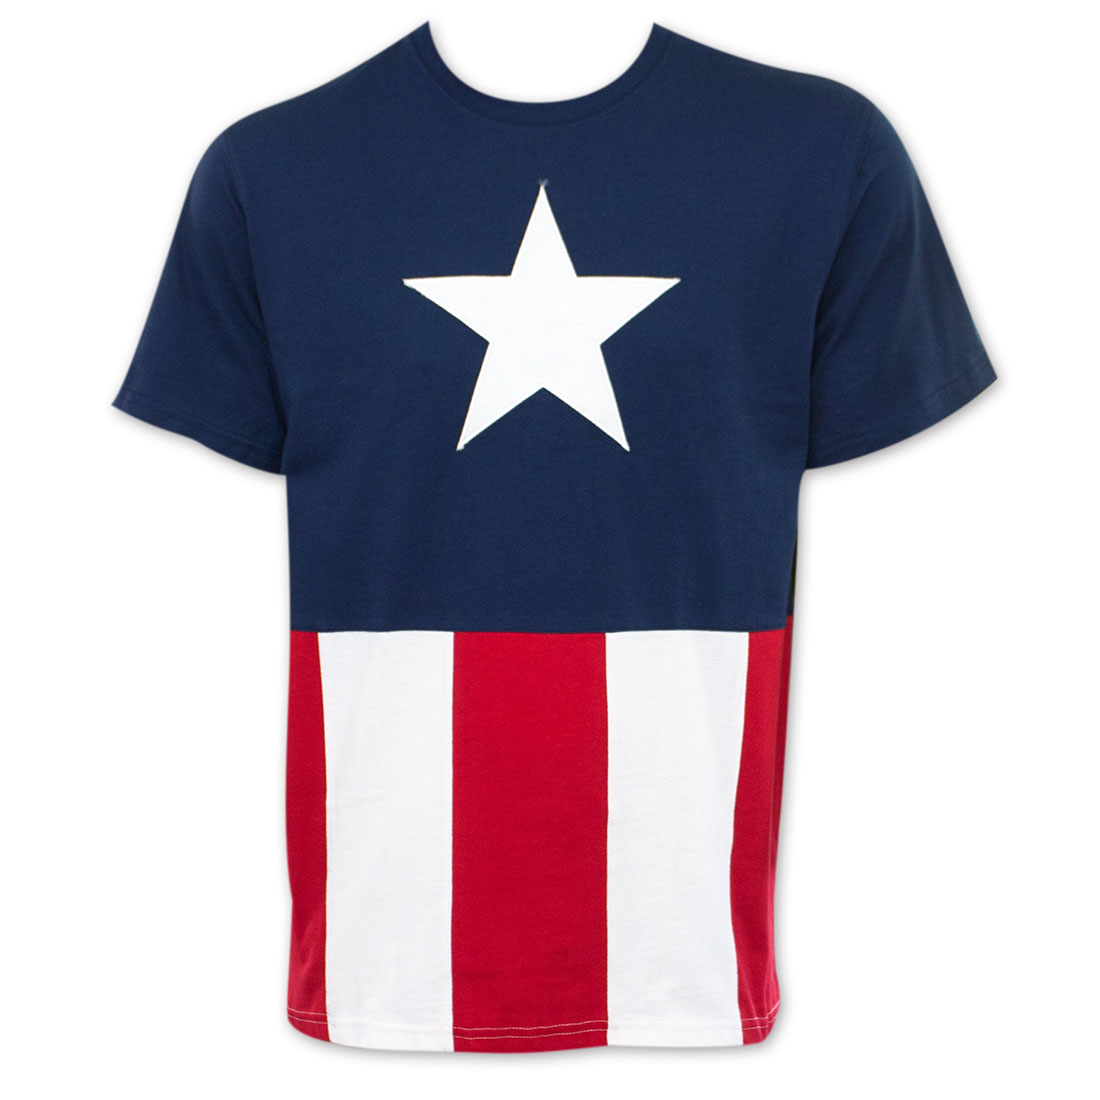 Captain America Men's Stitched Flag Tee Shirt